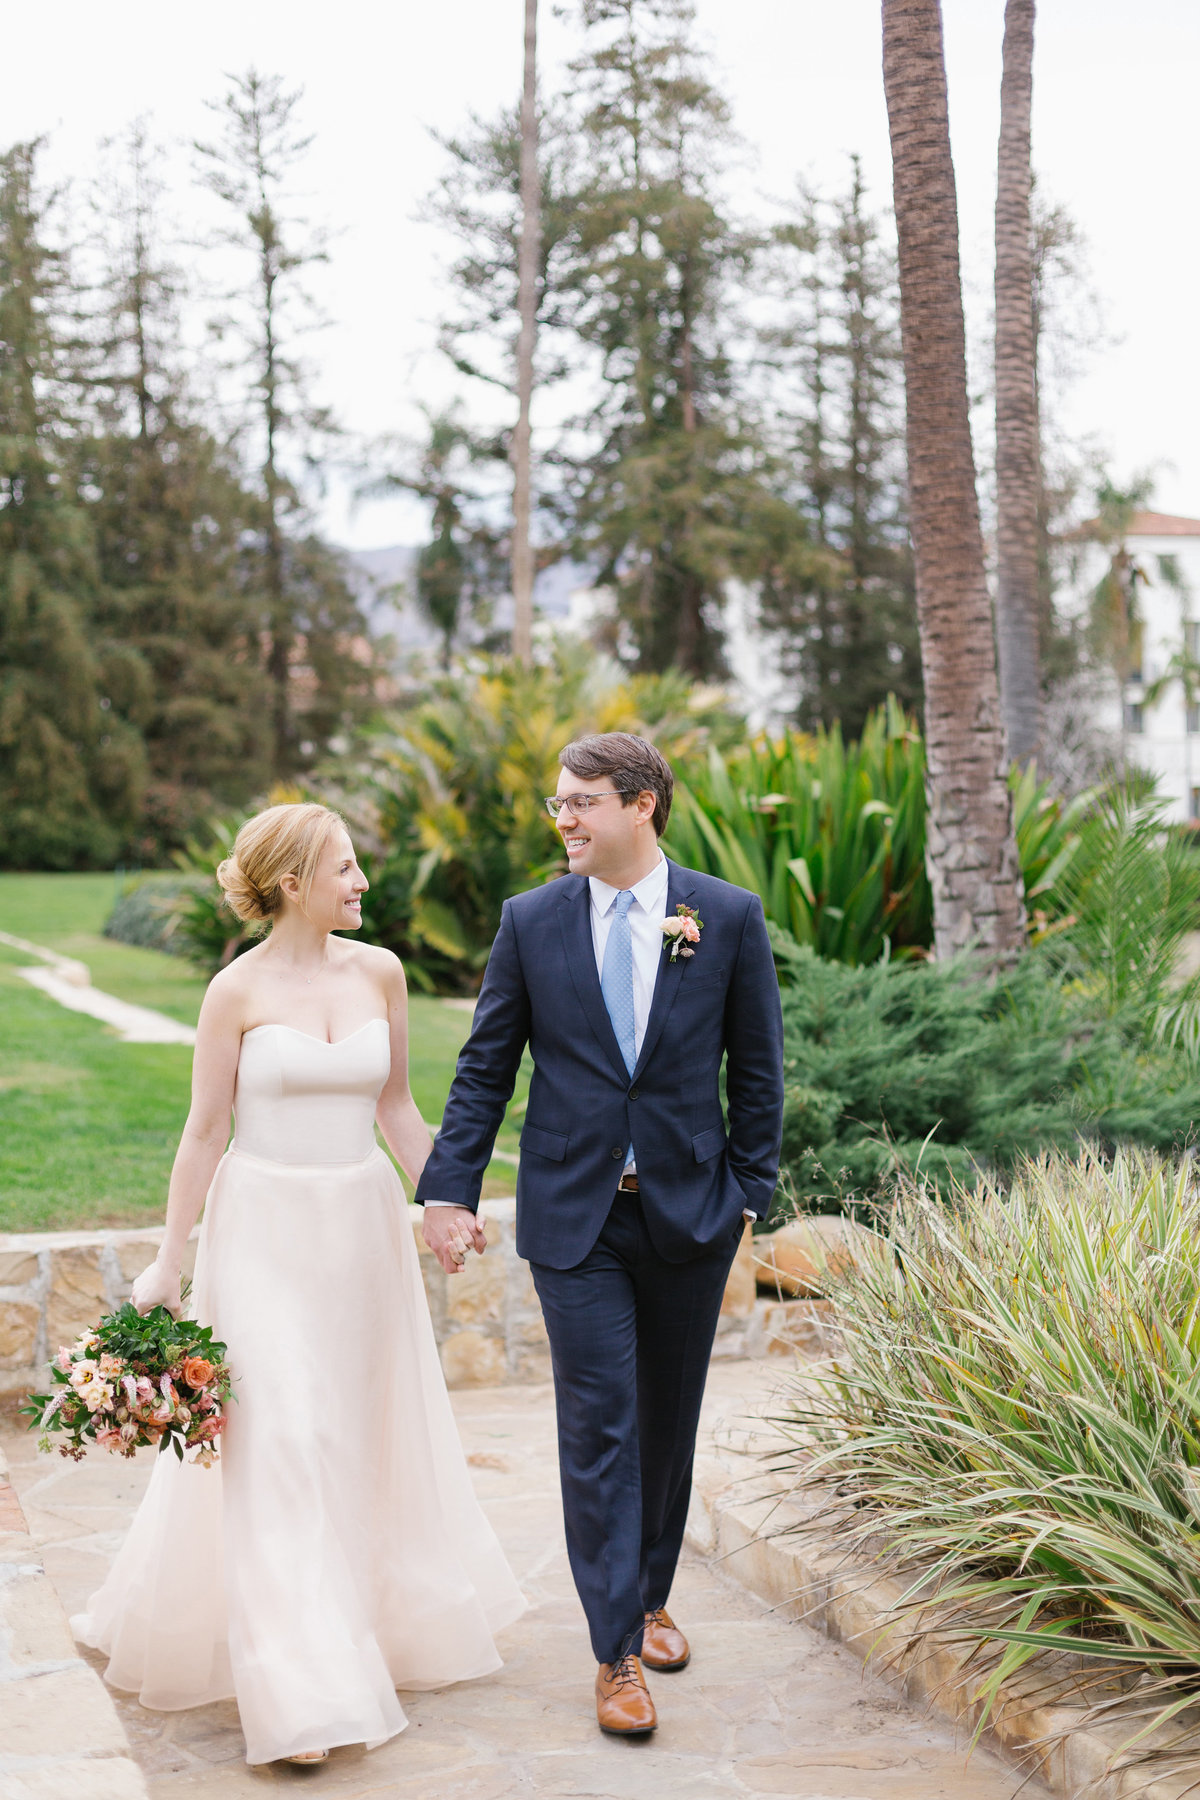 Intimate-Romantic-Santa-Barbara-Wedding-Venue-16